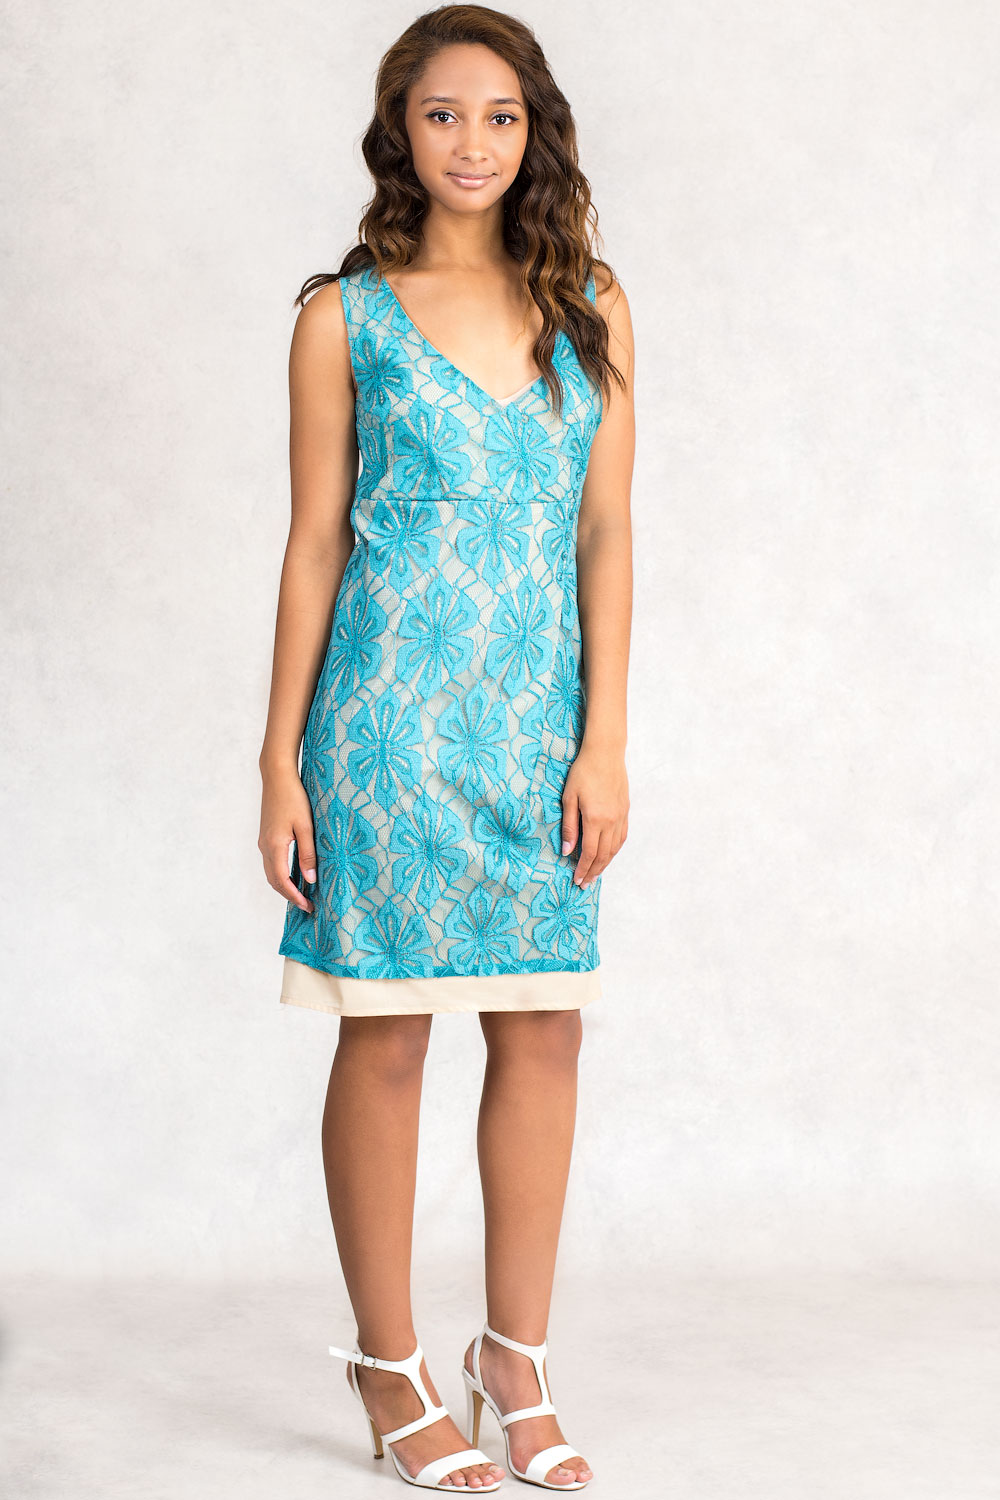 Light Sea Green Lace Dress Sistes Italy